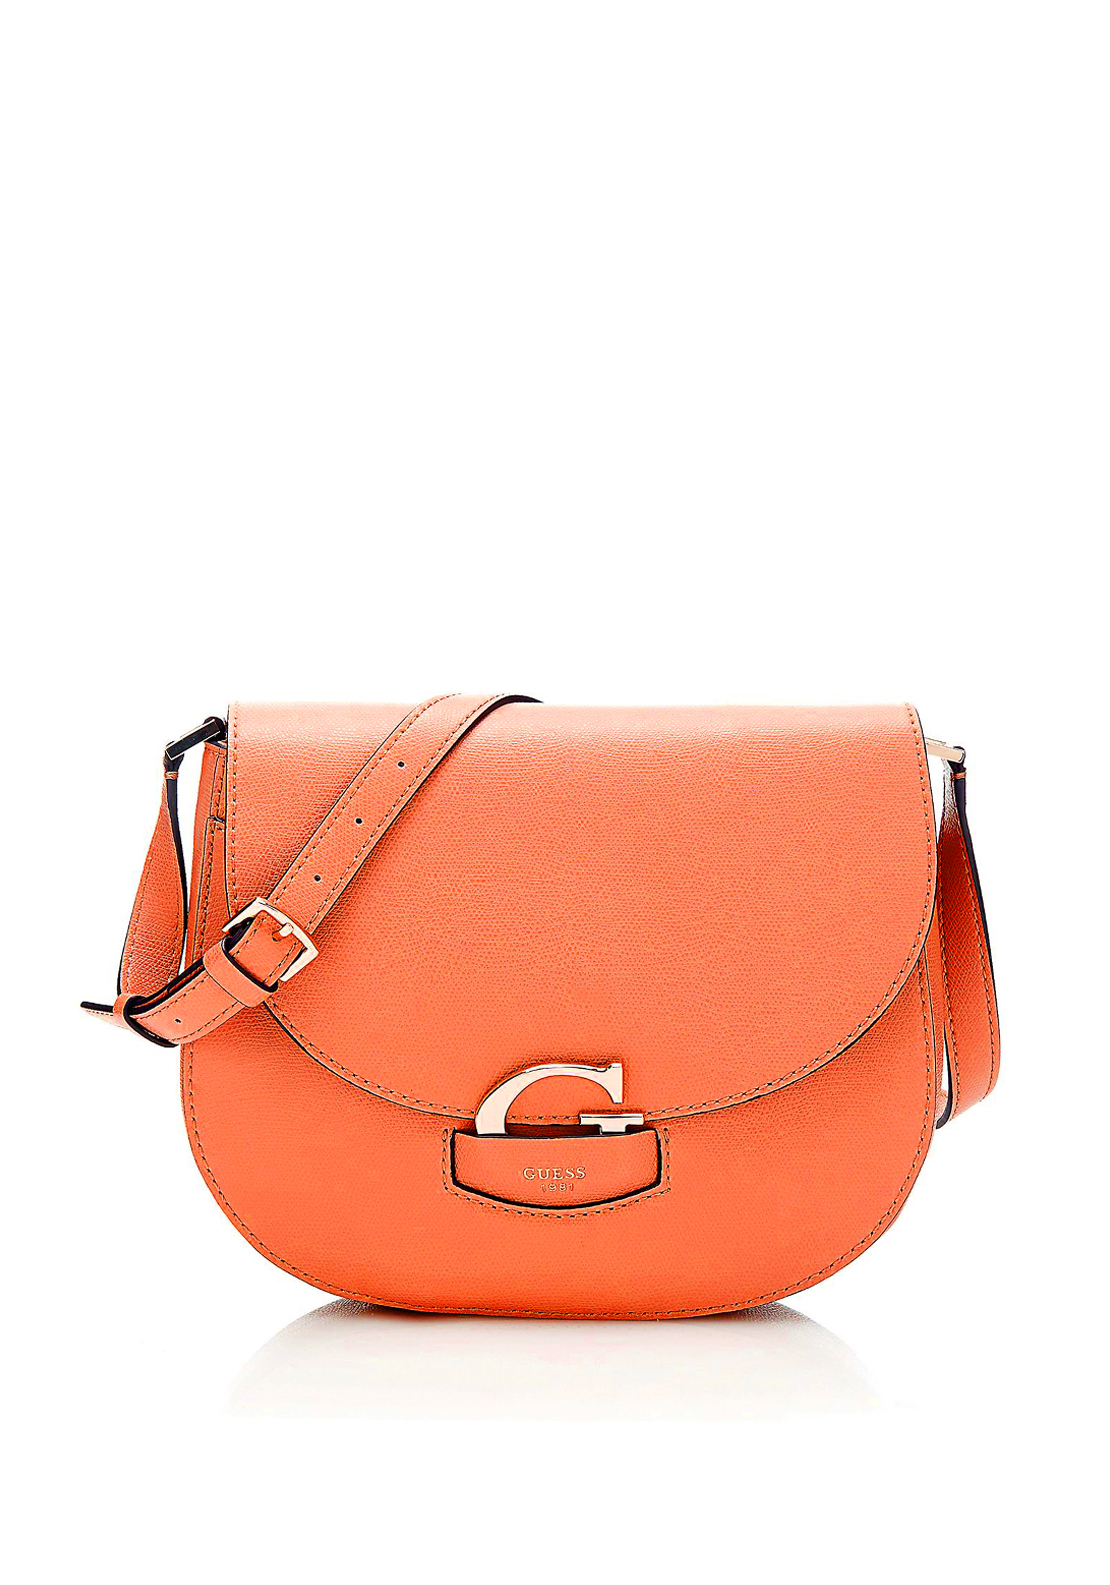 Guess Lexxi Saddle Shoulder Bag, Orange